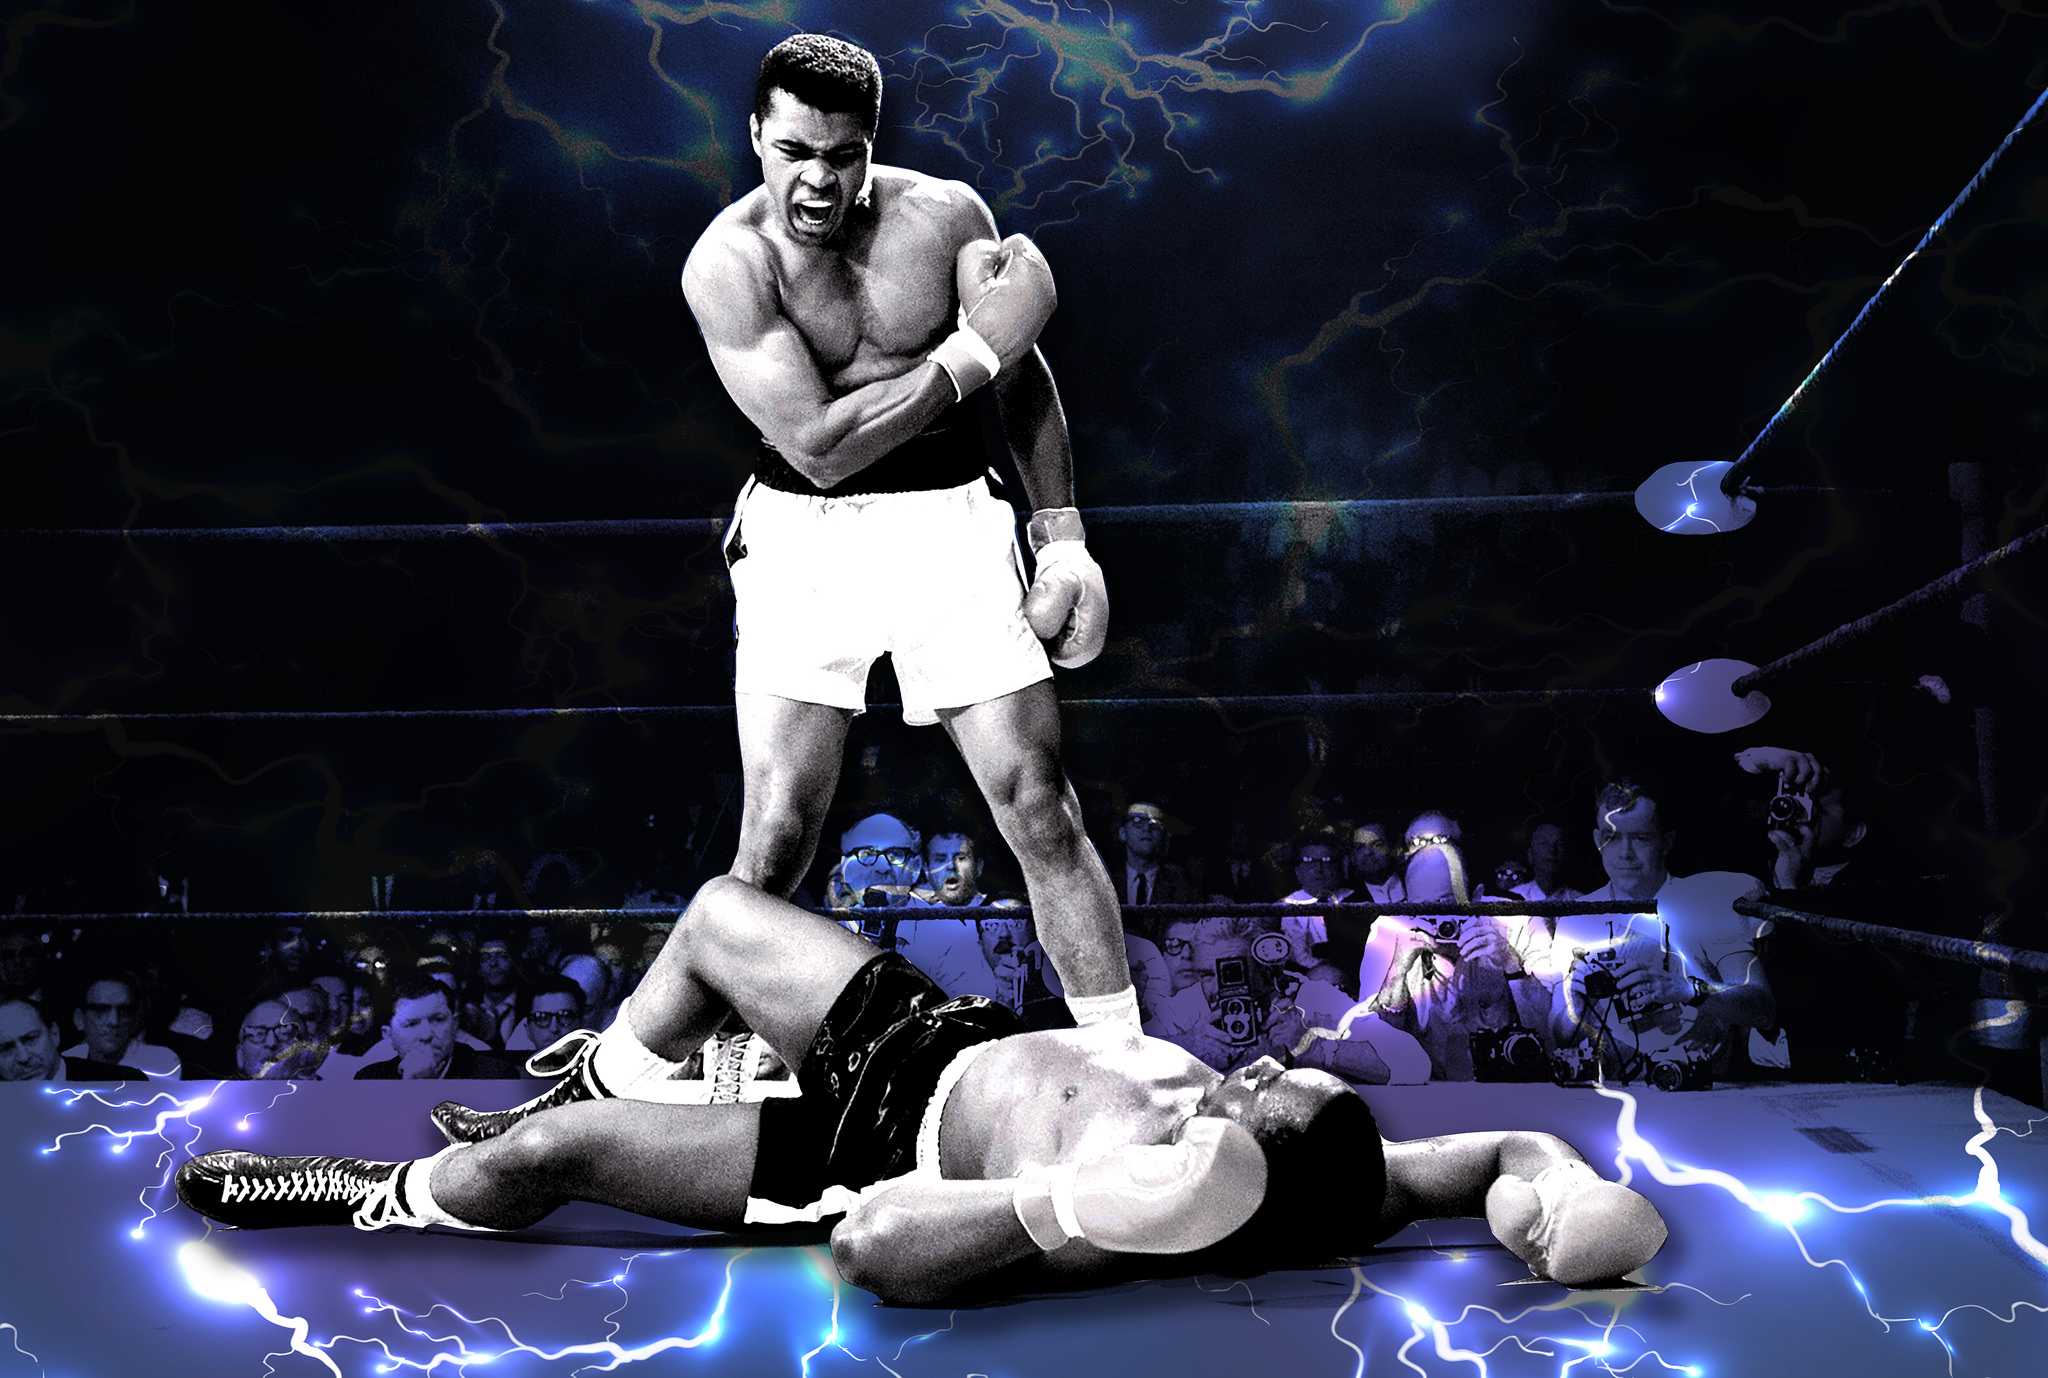 Muhammad Ali the boxer standing over his opponent knocked out in the ring